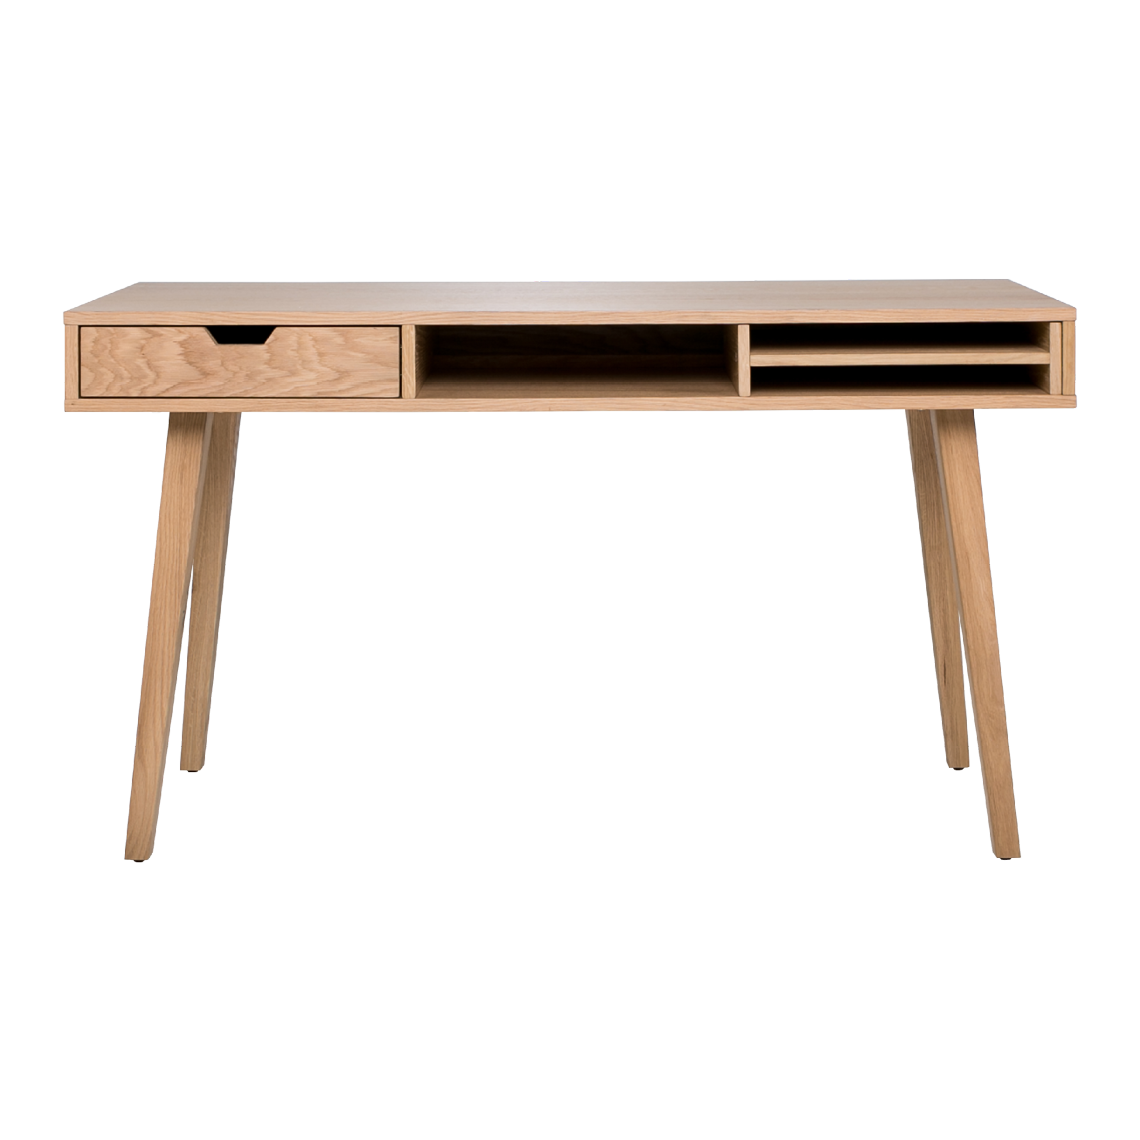 39137 Popular Category - Deep etches_Desks.png